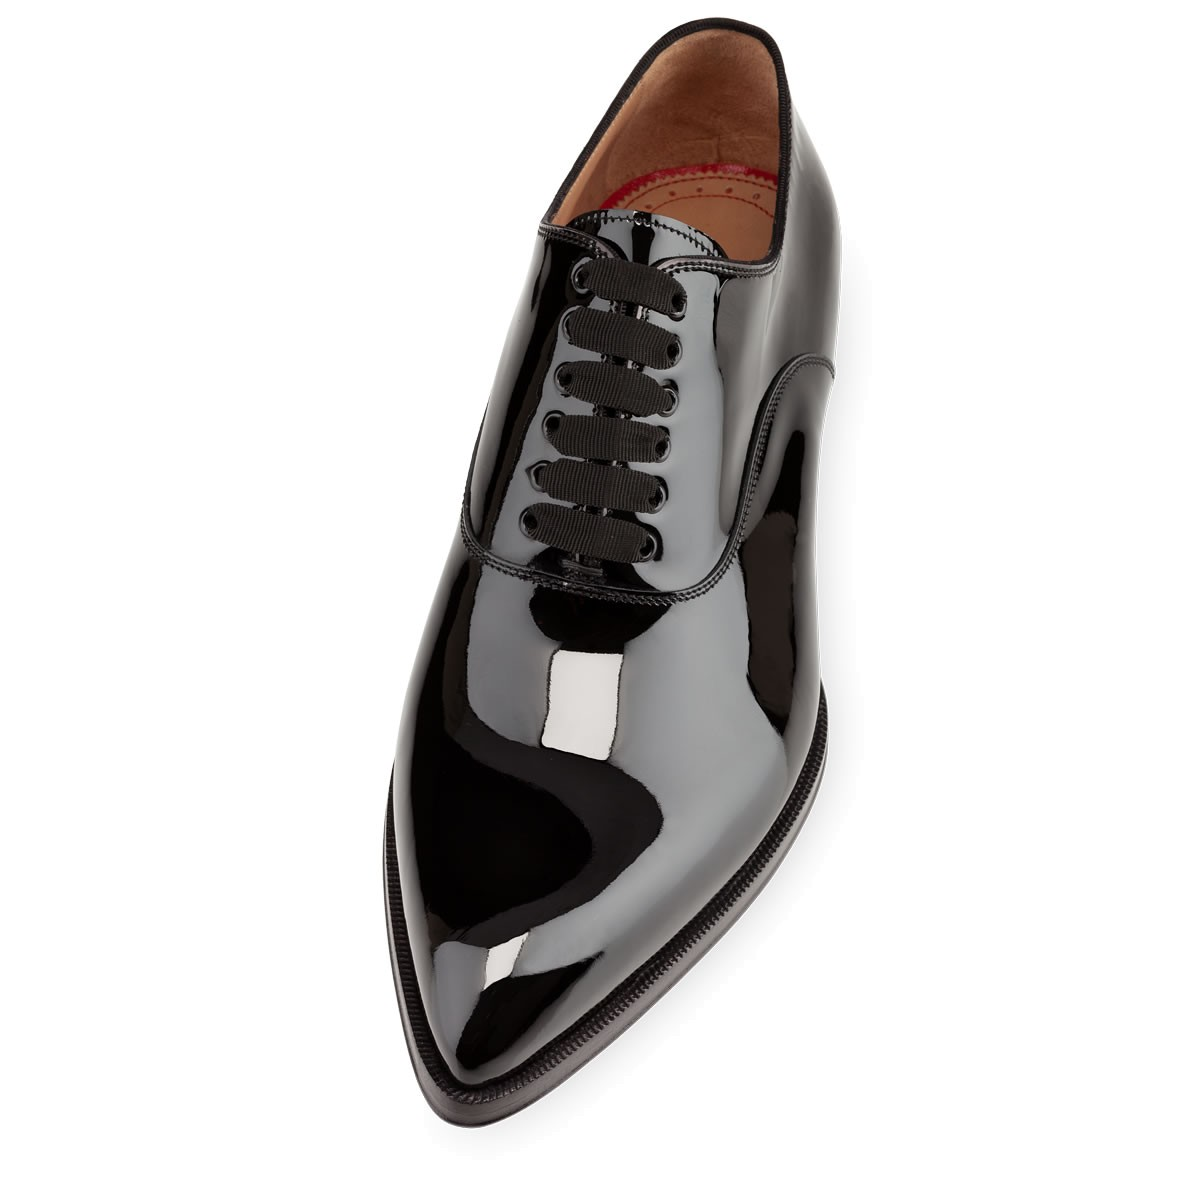 Dandy Mens Shoes